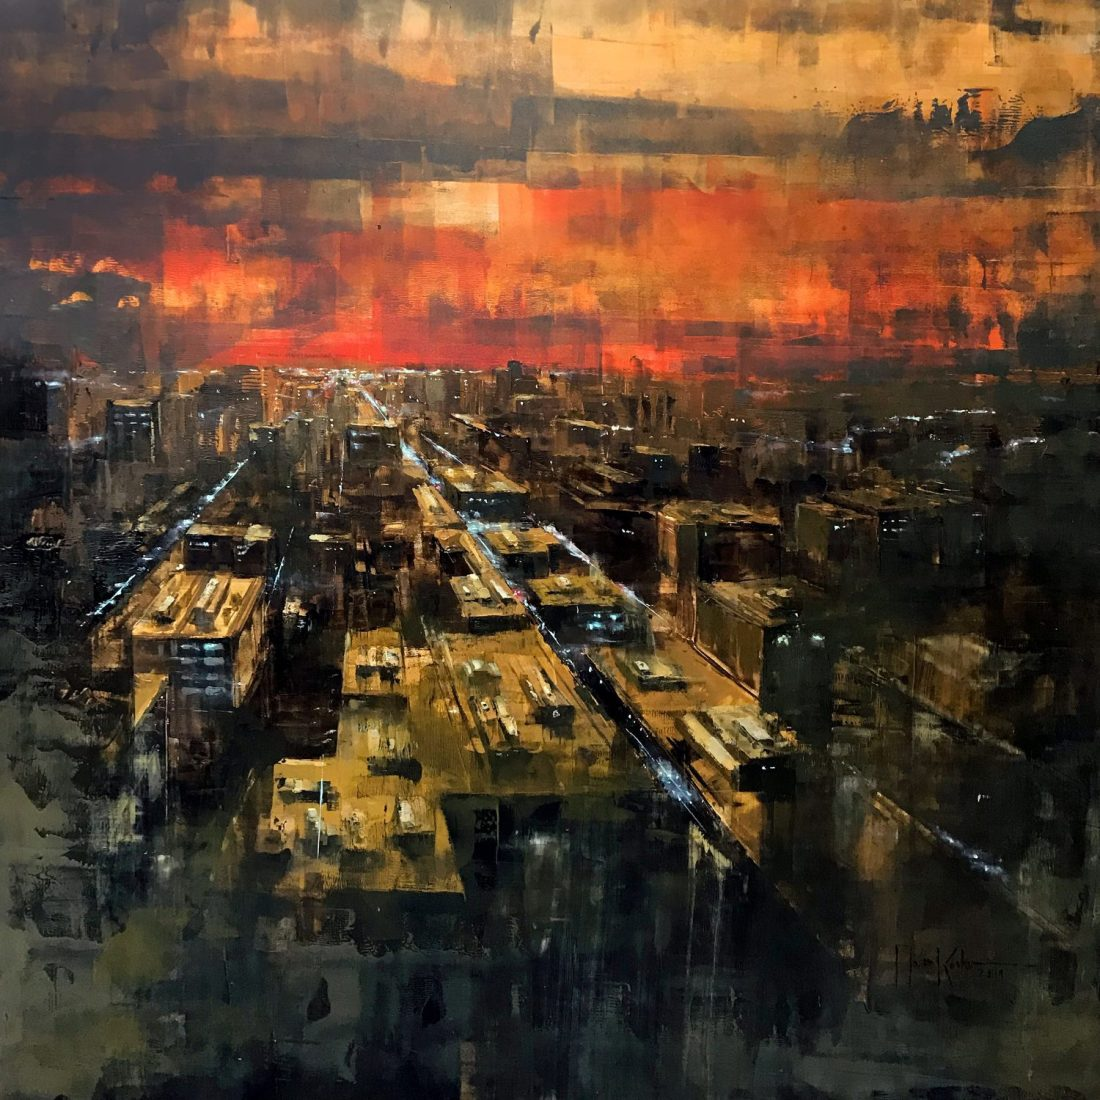 Martin Köster, New York sunrise III, Oil on panel, Unikat, 2019, 100 x 100 cm